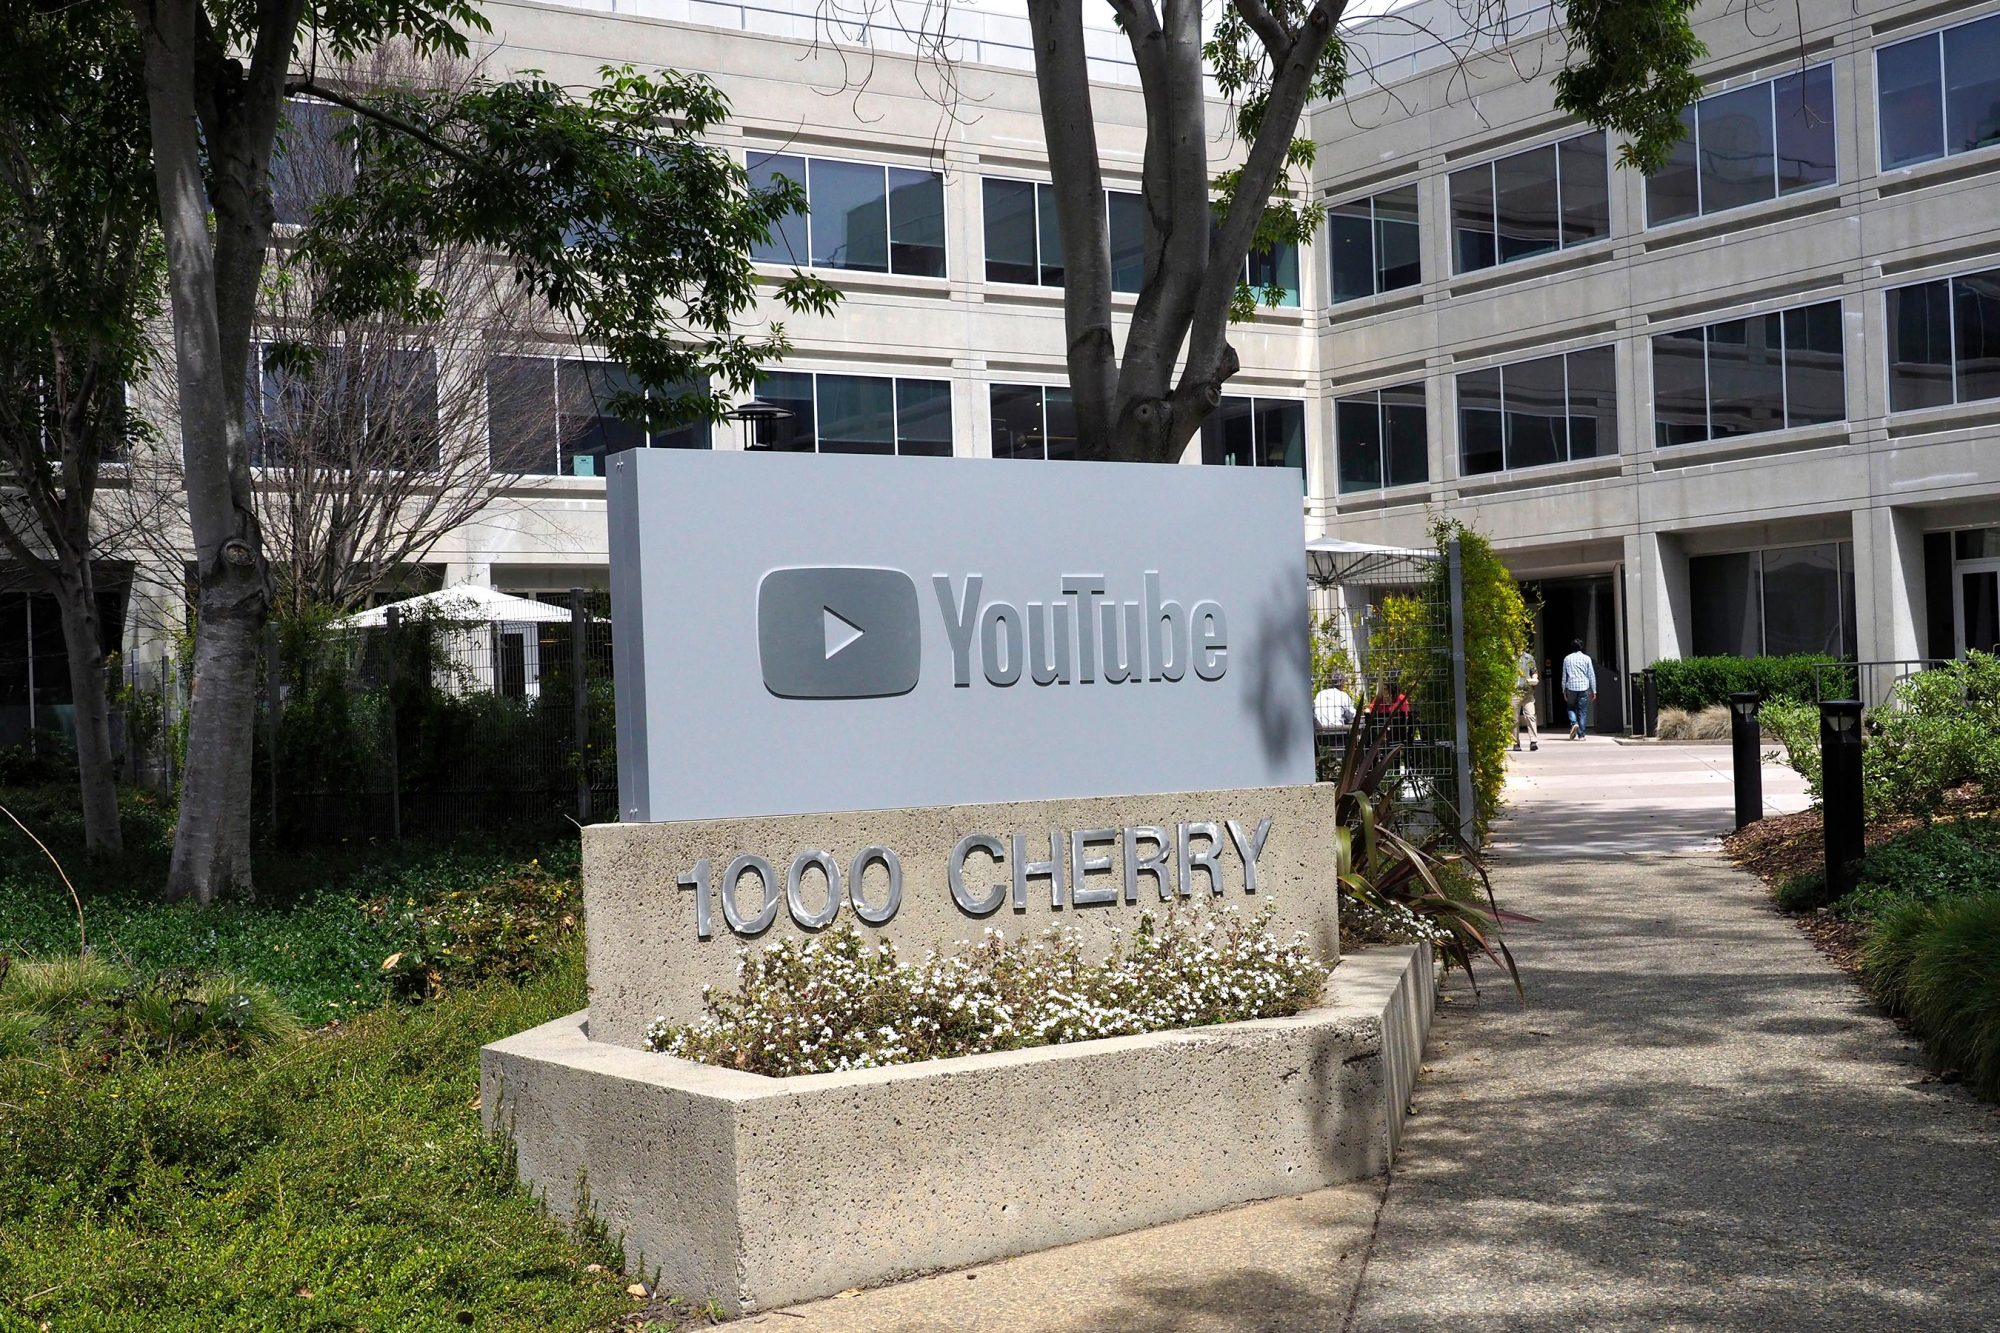 YouTube Headquarters, San Bruno, USA - 30 Mar 2018